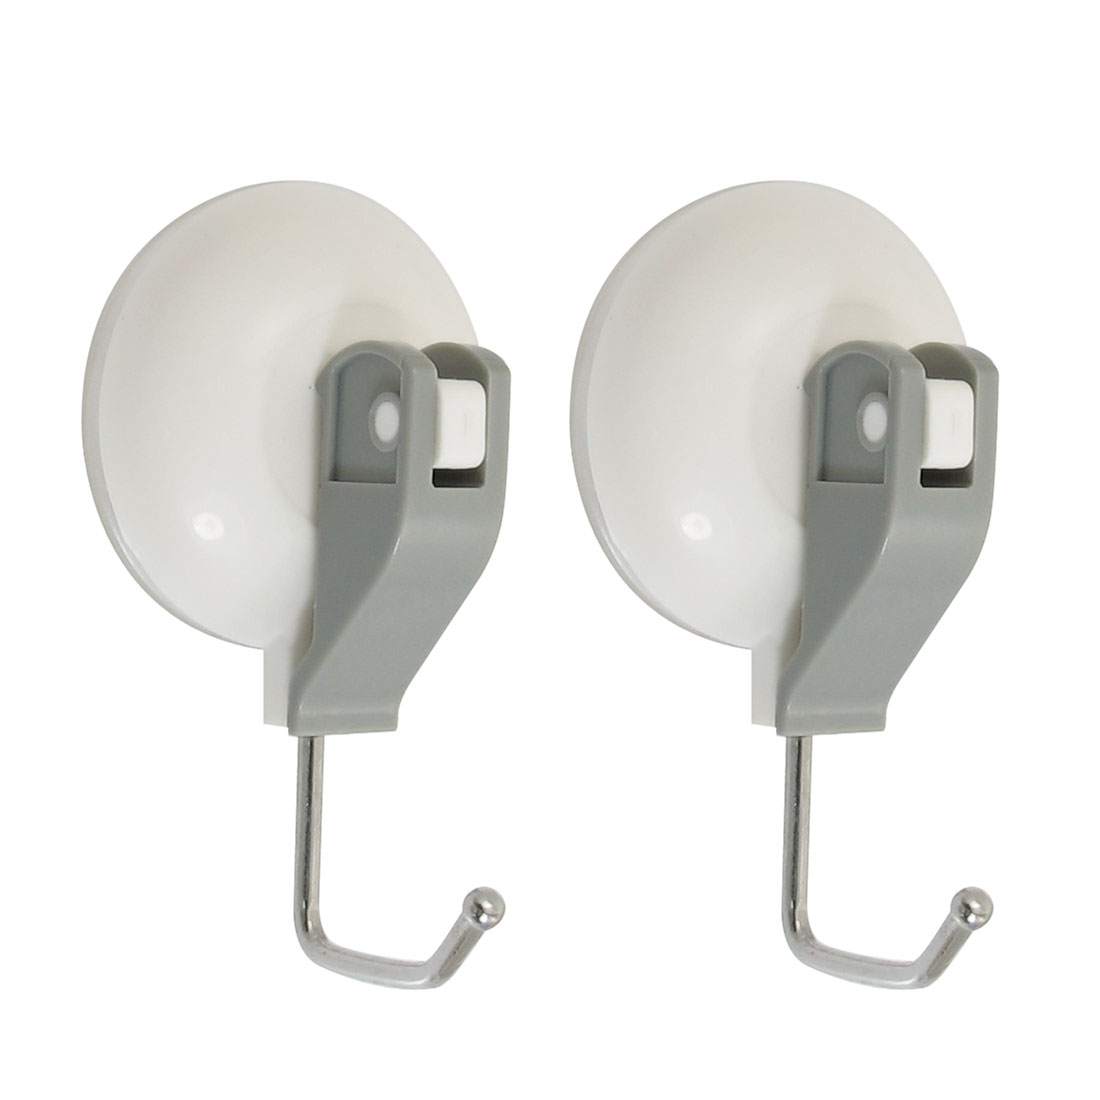 Bathroom White Circle Plastic Shell Suction Cup Single Hook Wall Hangers 2 Pcs